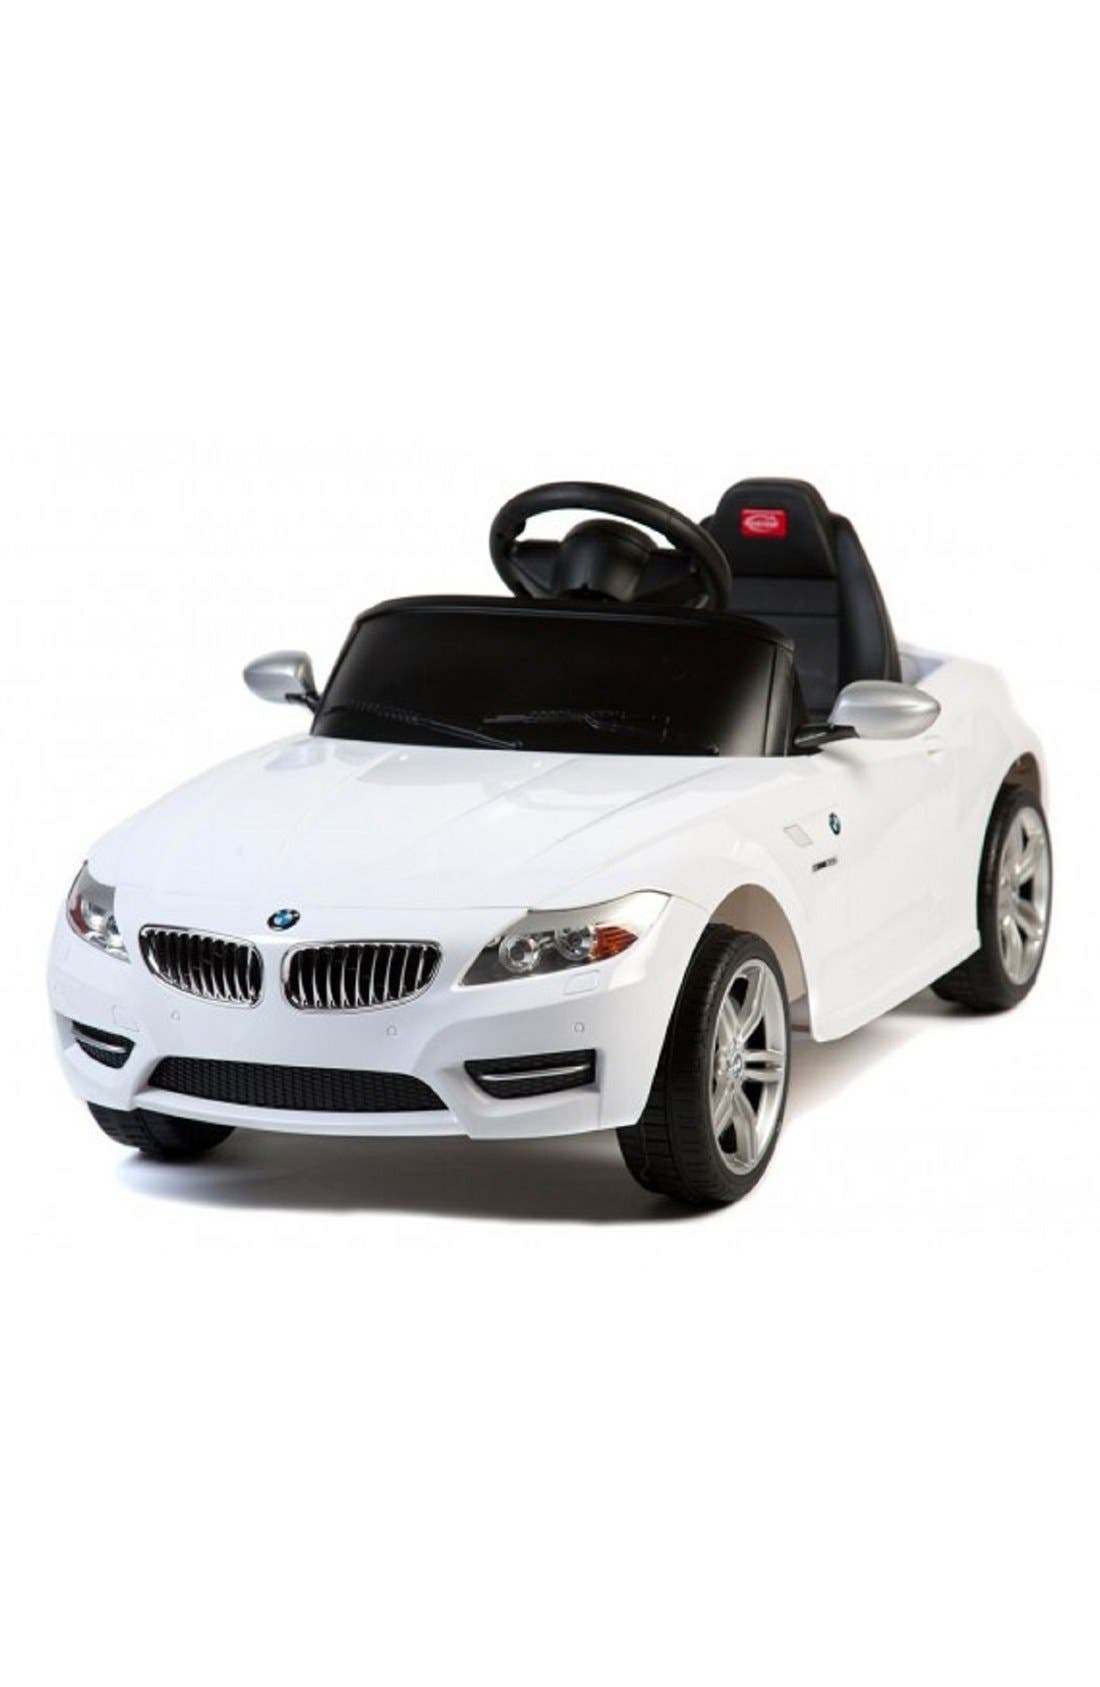 Best Ride on Cars 'BMW Z-4' 6V RC Ride-On Toy Car